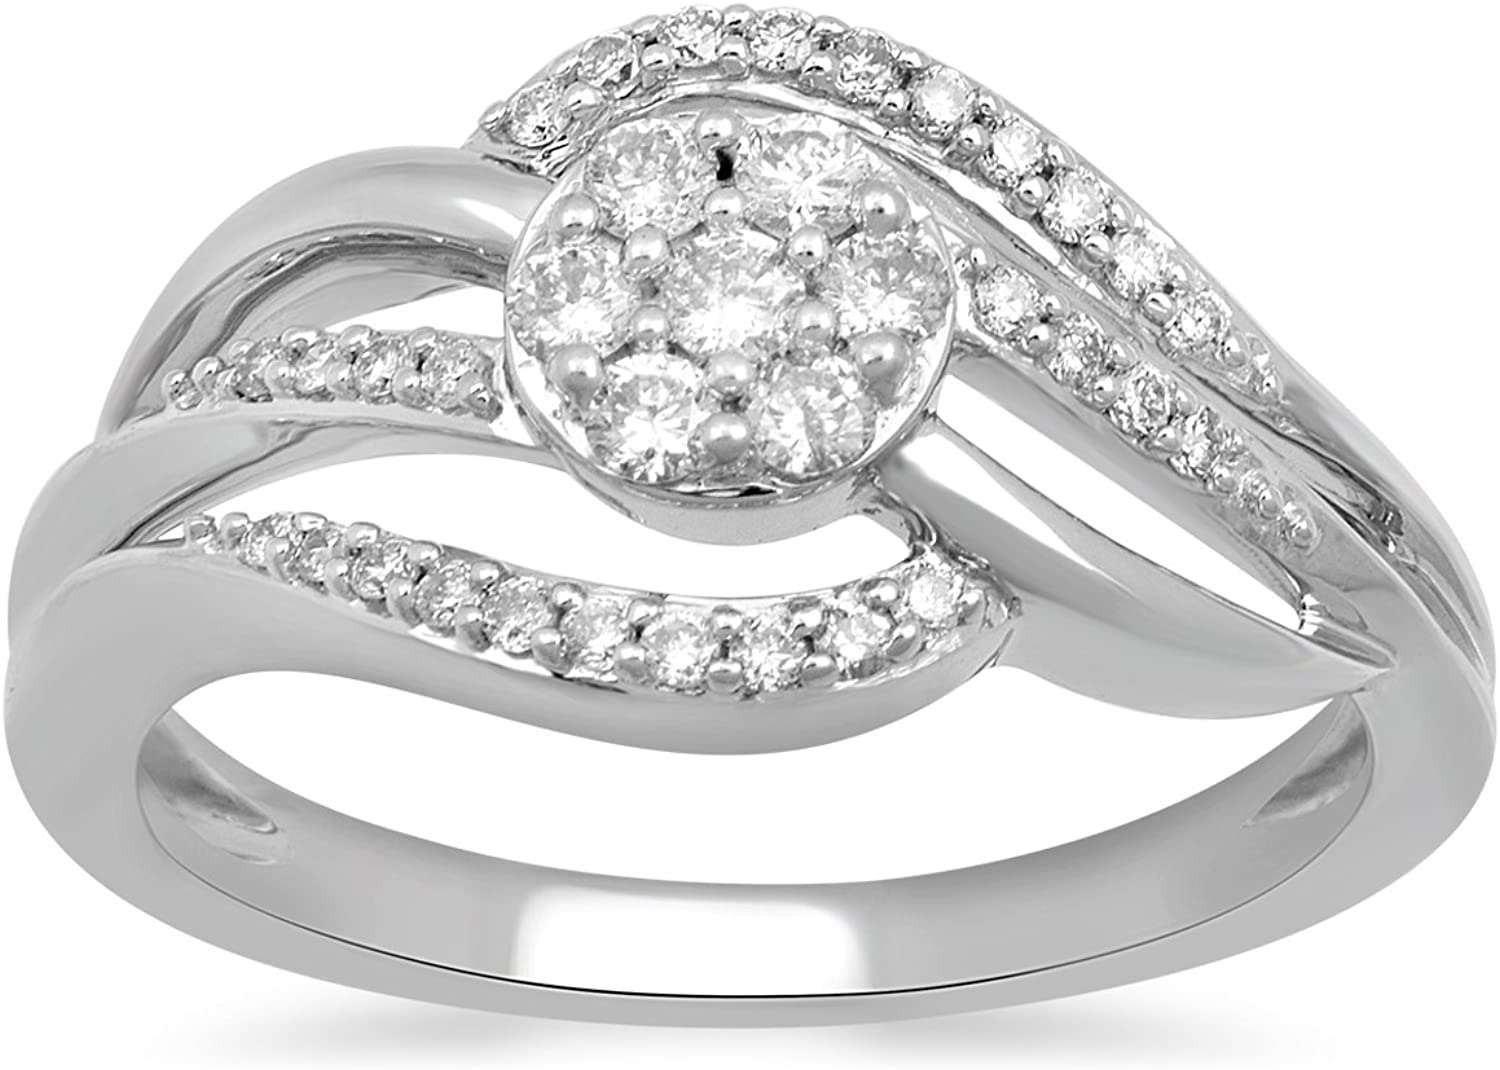 Jewelili 10kt White Gold 1/3cttw Diamond Crossover Ring, Size 7